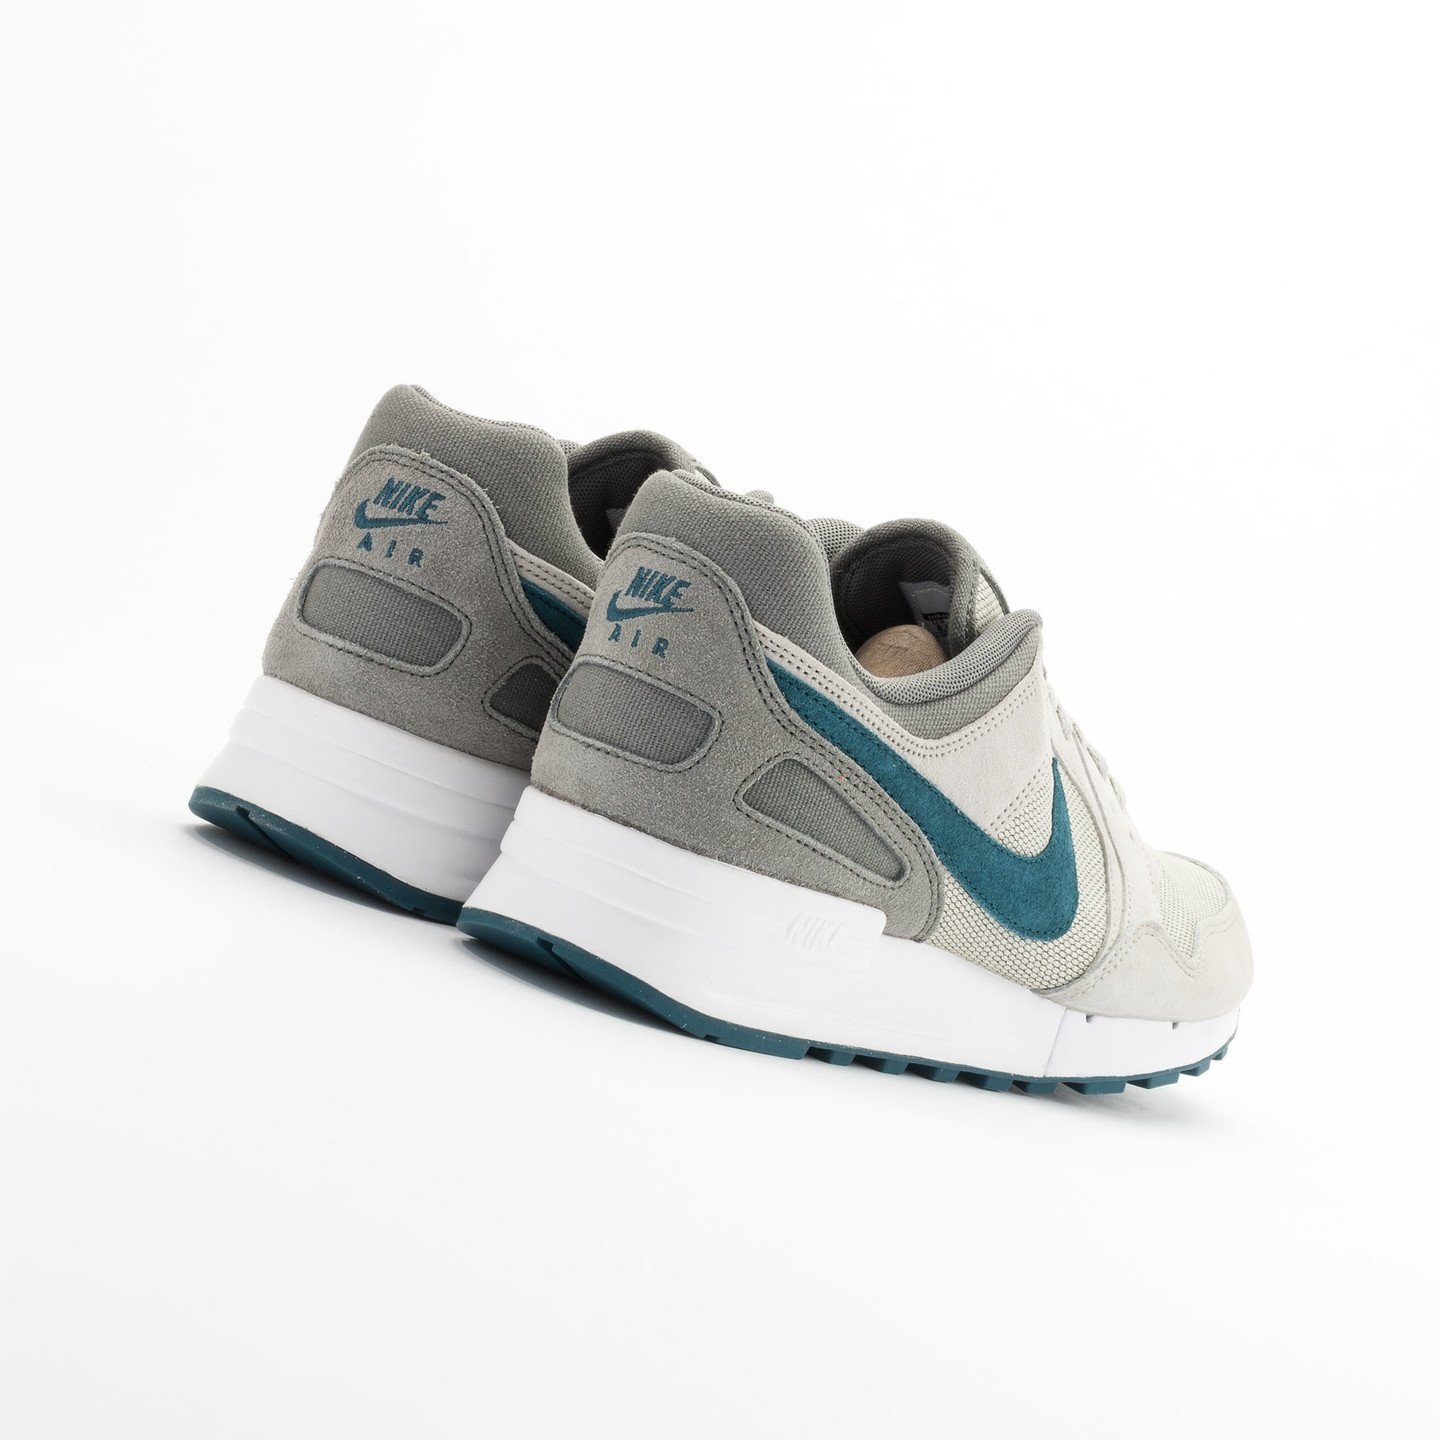 Nike Air Pegasus 89 Premium Lunar Grey / Teal - Tumbled Grey 724269-030-43